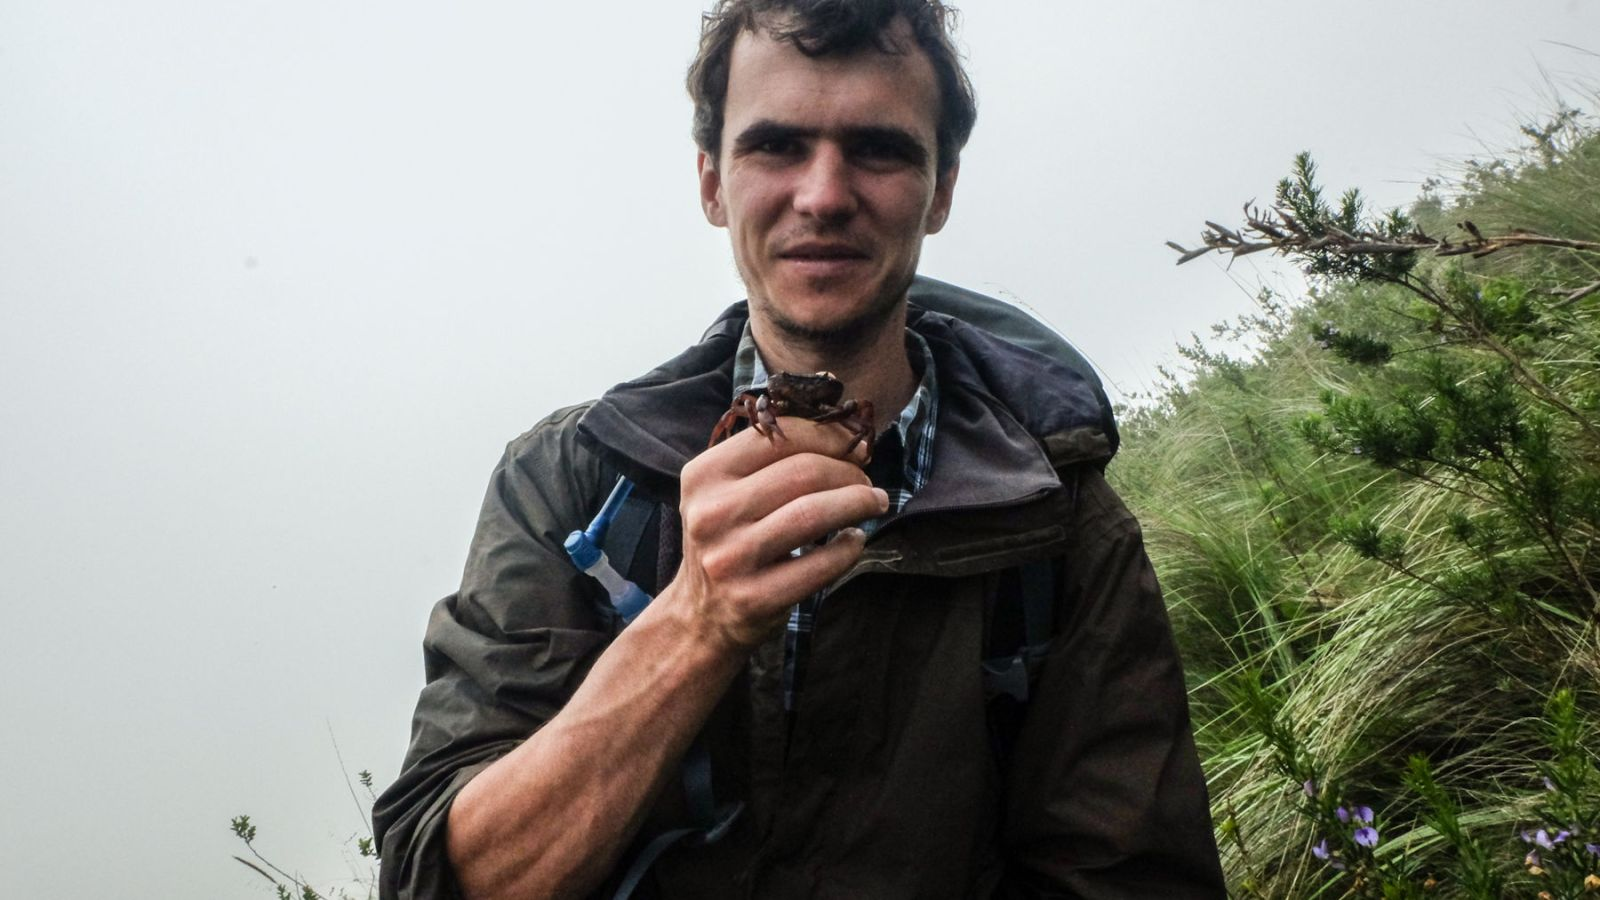 a photo of a hiker holding up a crab on the amathole trail in south africa.